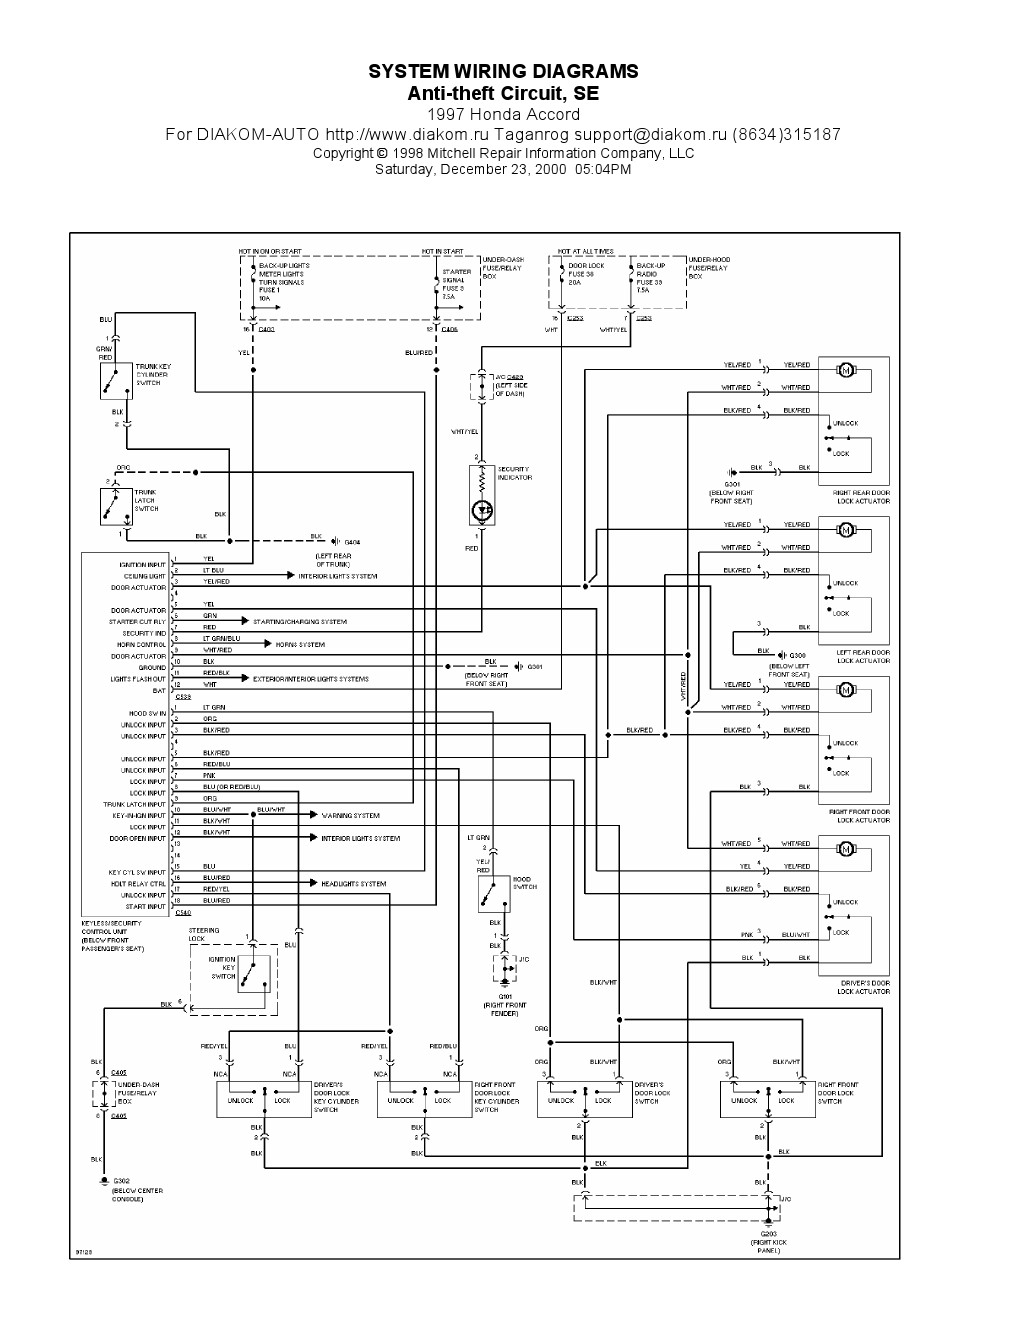 2014 honda accord wiring diagram Collection-Honda Wiring Diagrams Lovely 1994 Honda Accord Wiring Diagram & Honda Civic Ignition Wiring 7-j